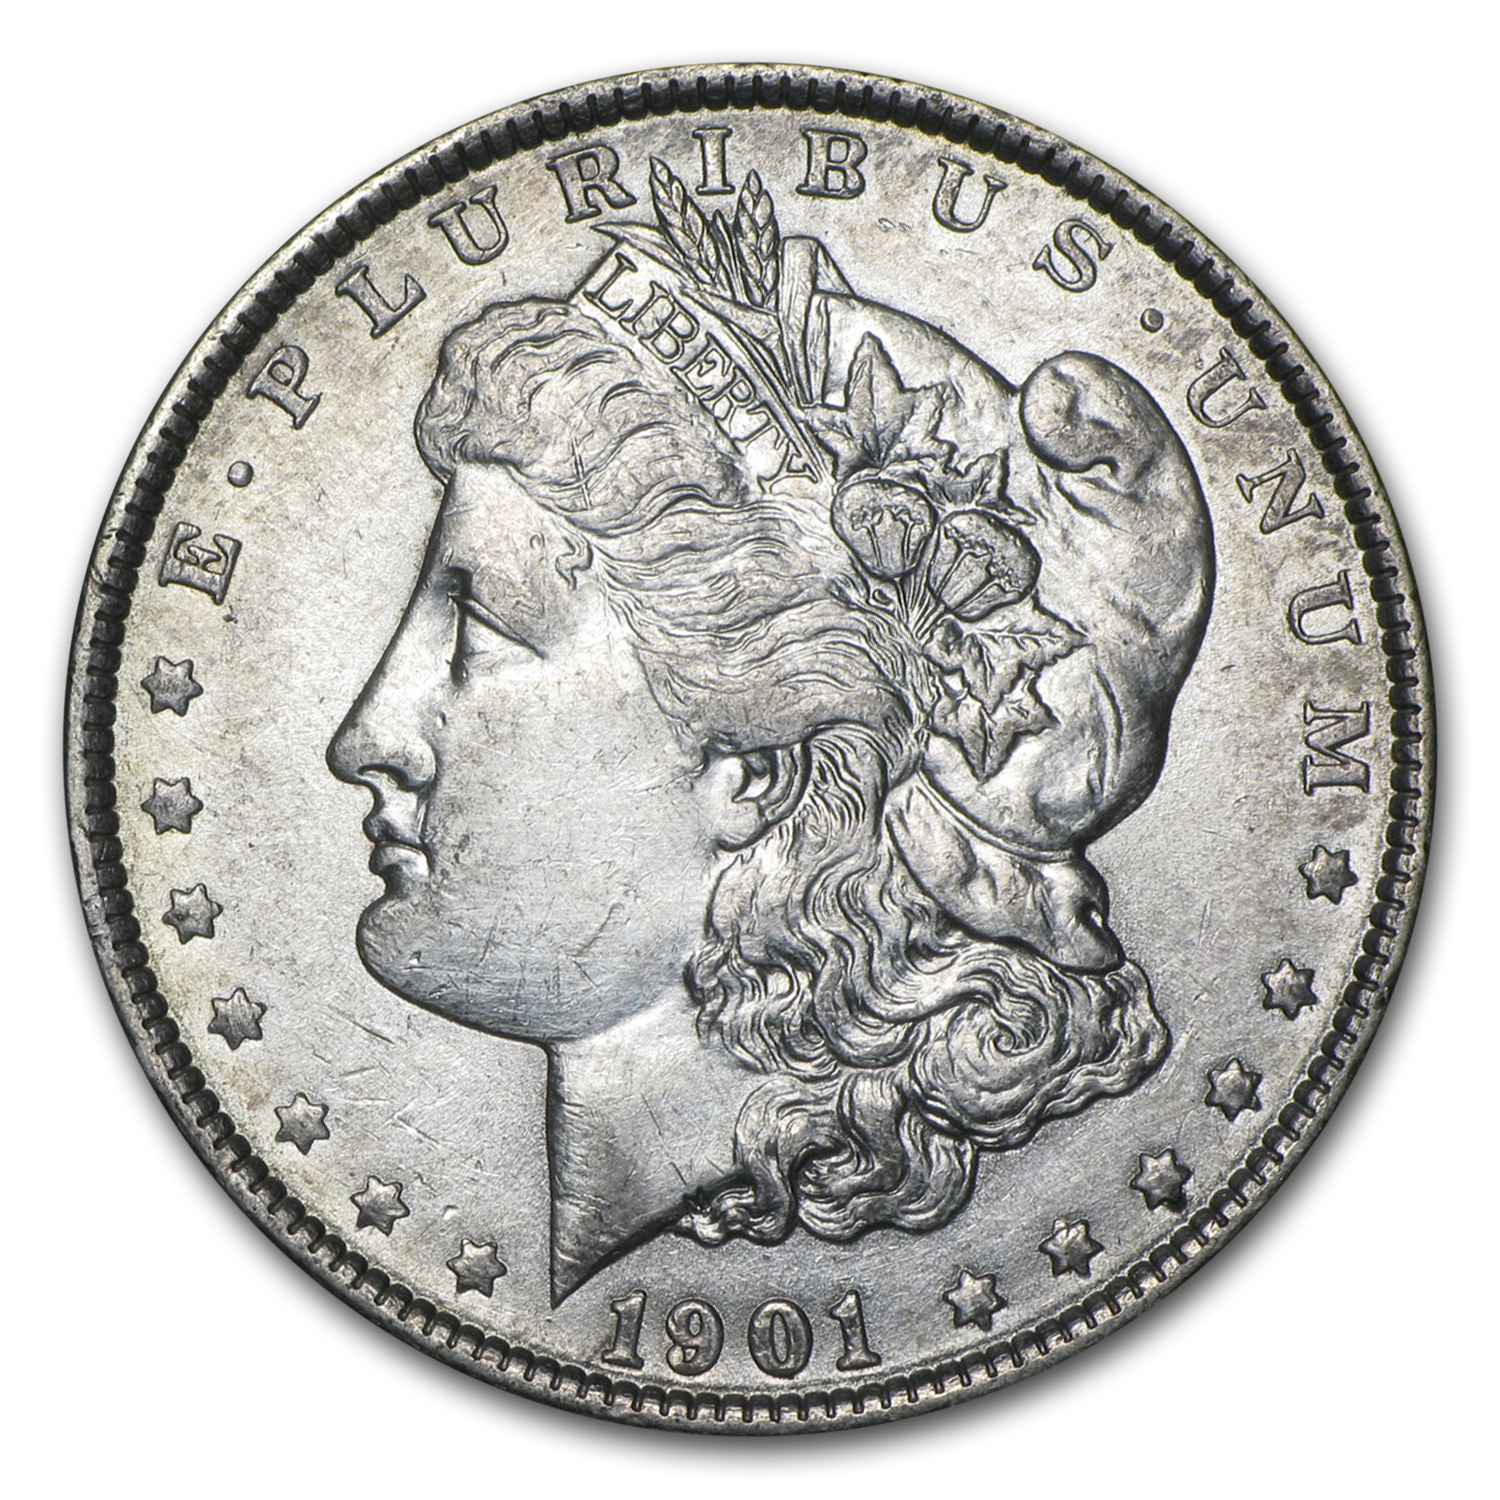 1901 Morgan Dollar AU Details (Cleaned)